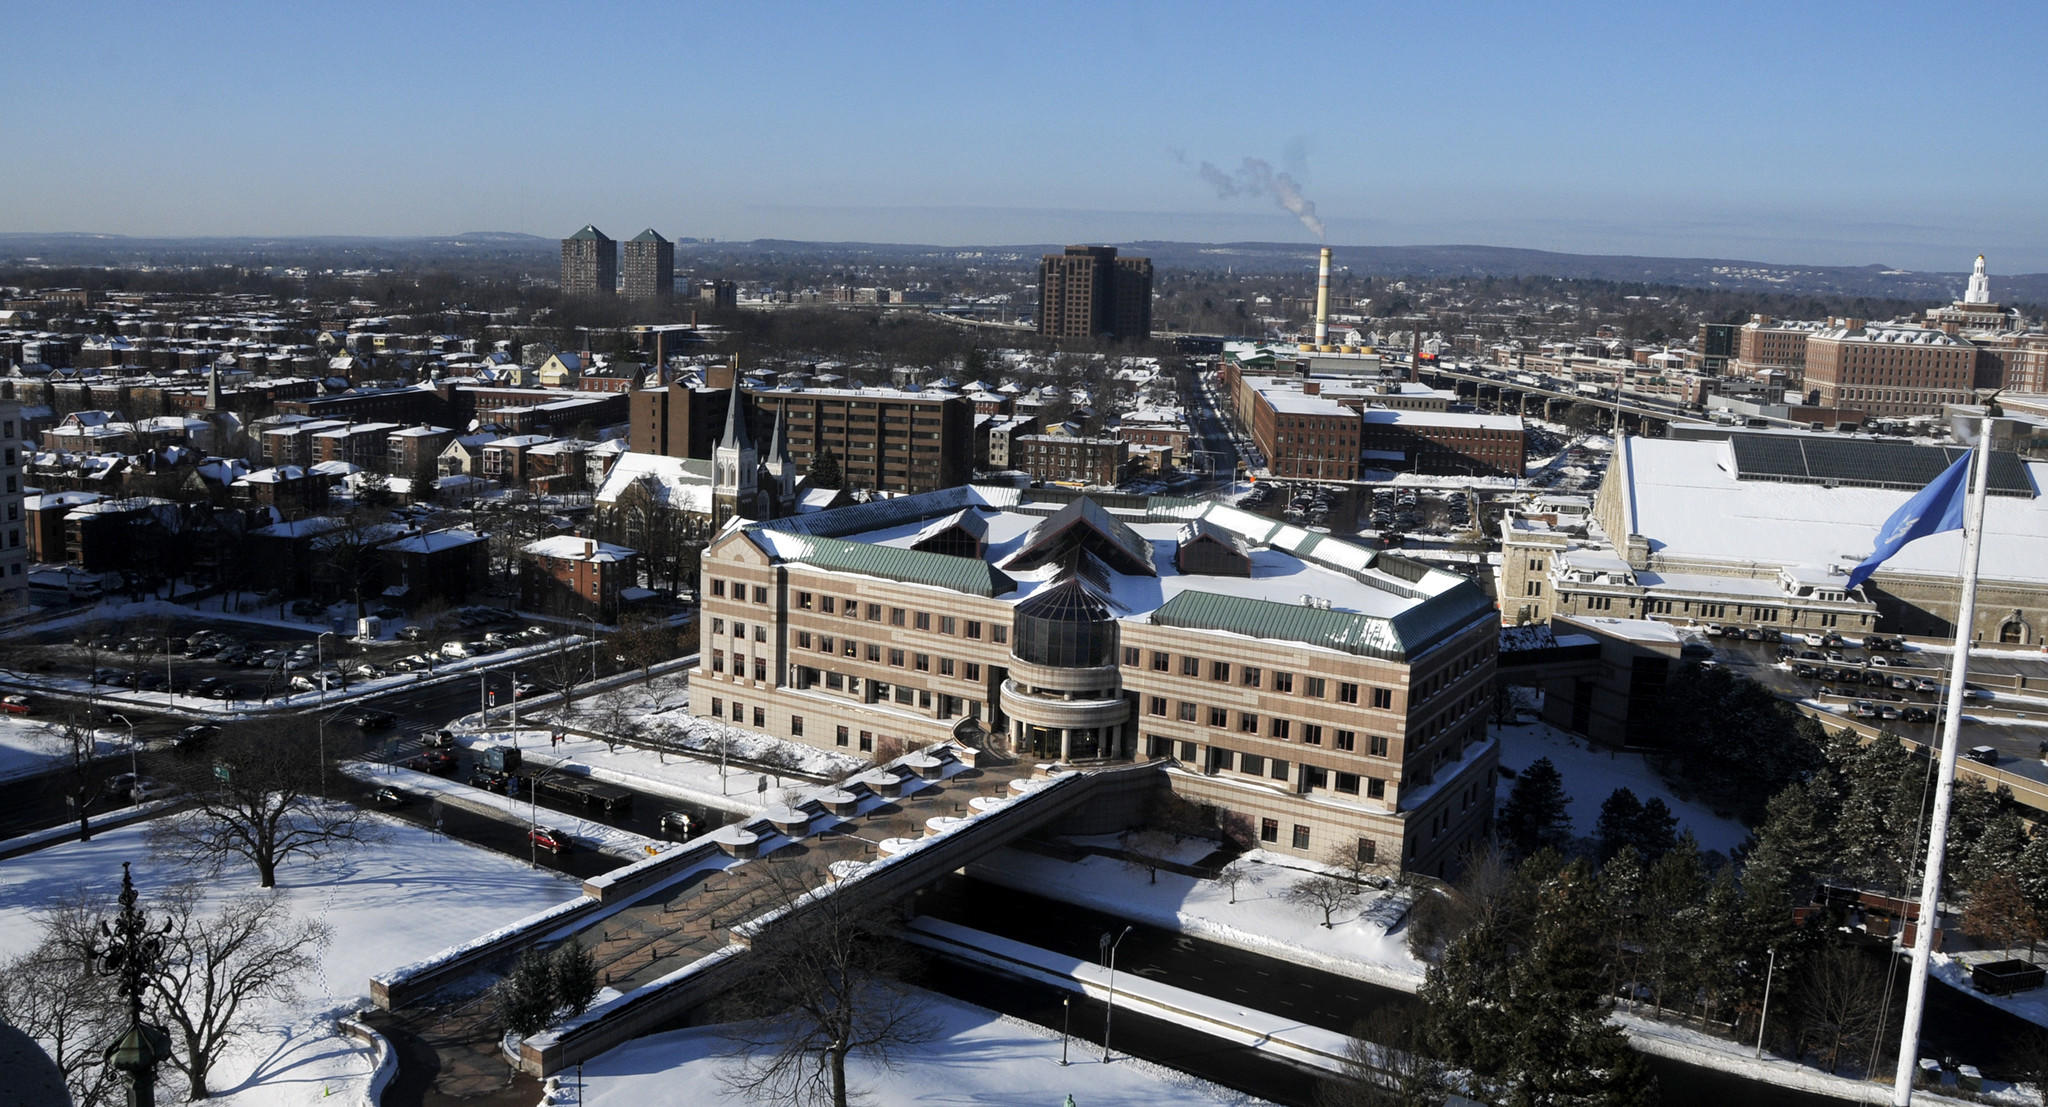 Federal agents were busy Thursday at the Legislative Office Building in Hartford, where they reviewed records and interviewed lawmakers and staff members.